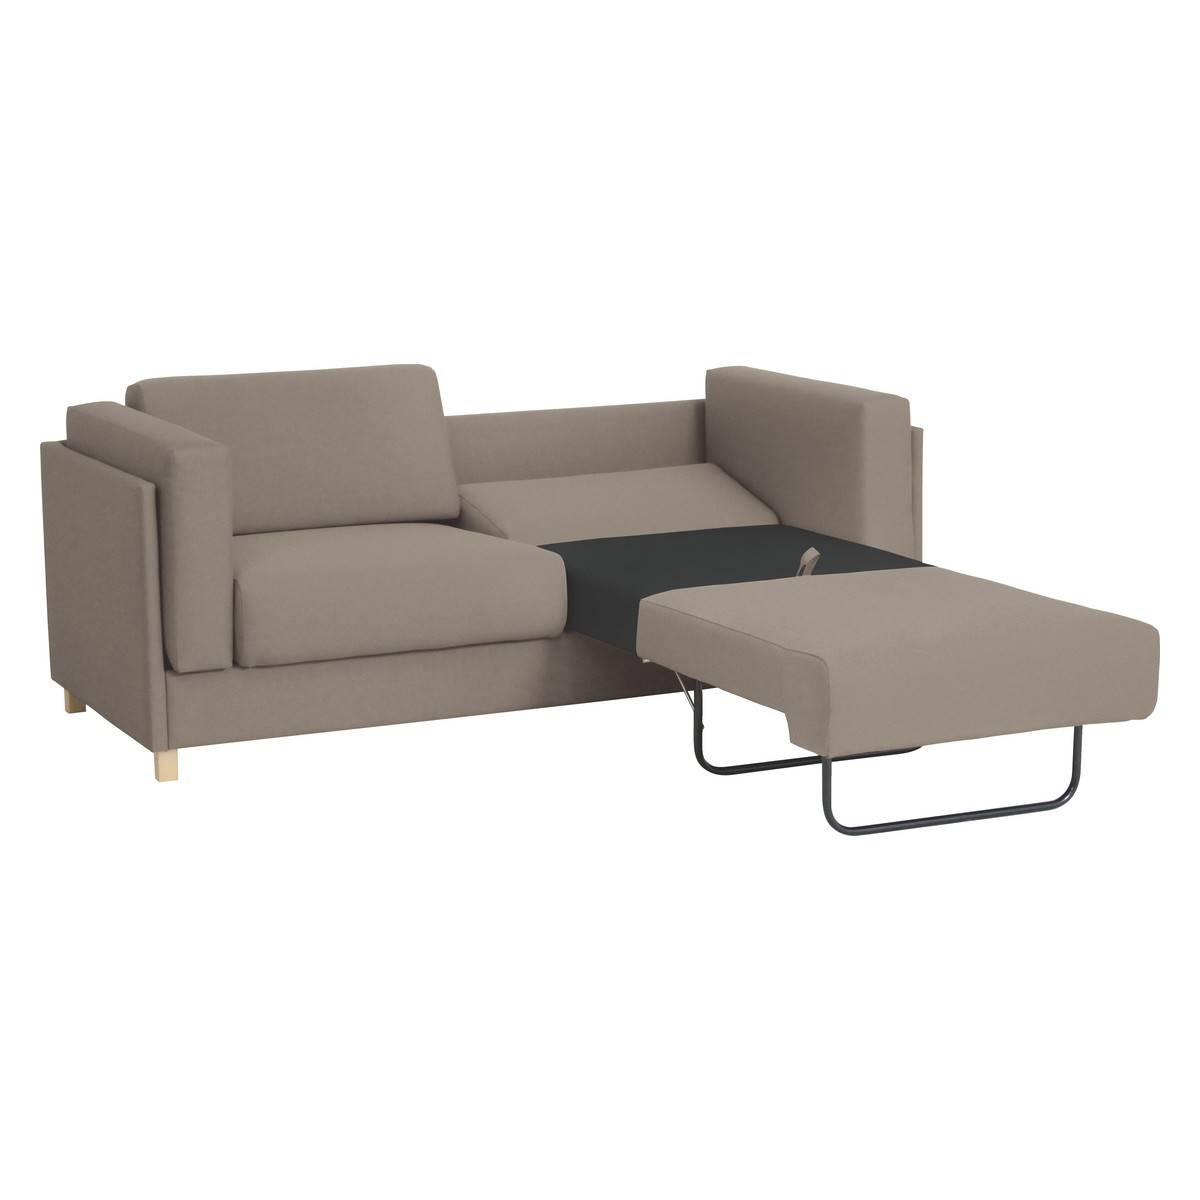 Chair Single Seat Sofa Bed Armchair Beds 207714 Cloud Love M with regard to Single Chair Sofa Beds (Image 2 of 30)